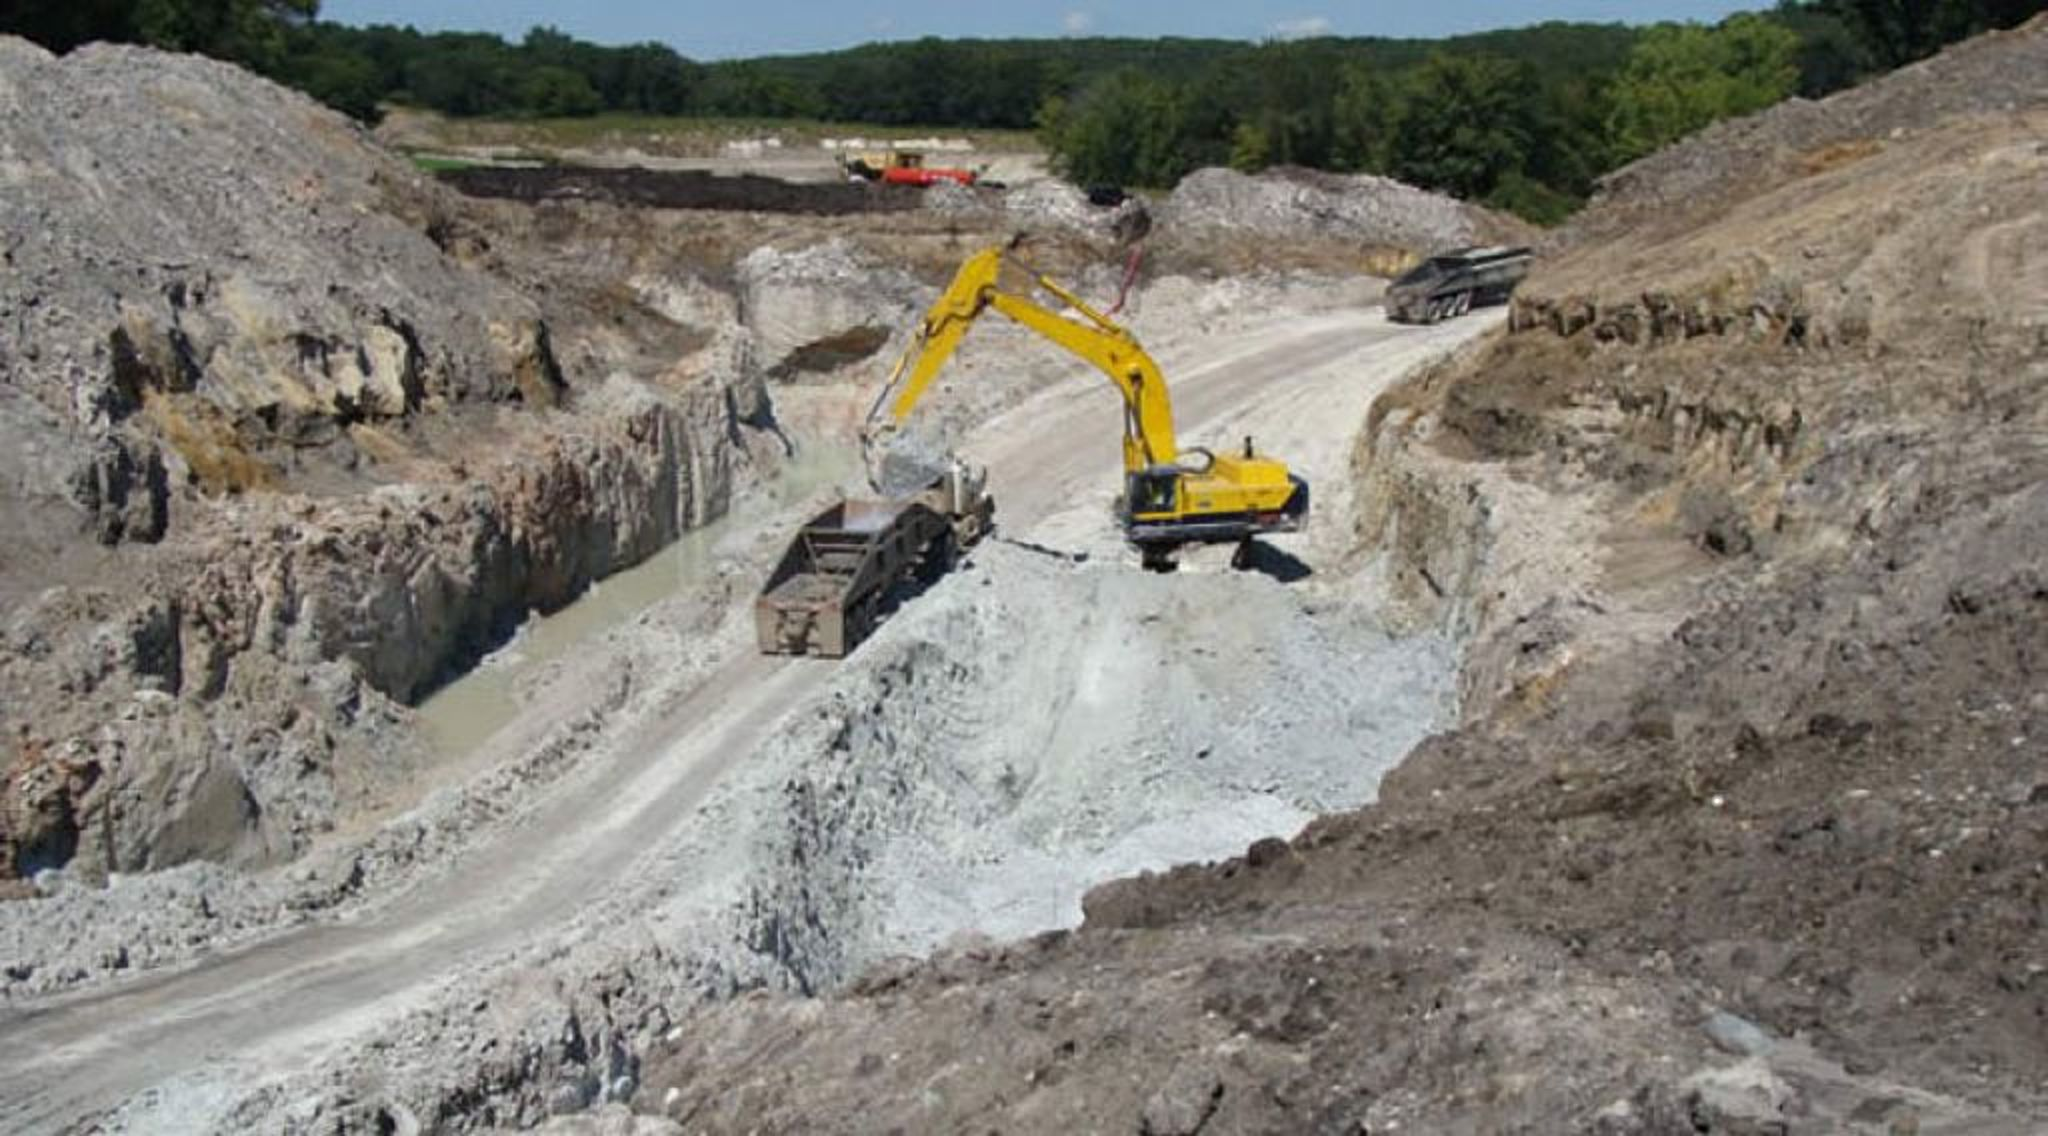 The cabinet has gazetted sand as mineral to control the increased exploitation (COURTESY PHOTO)